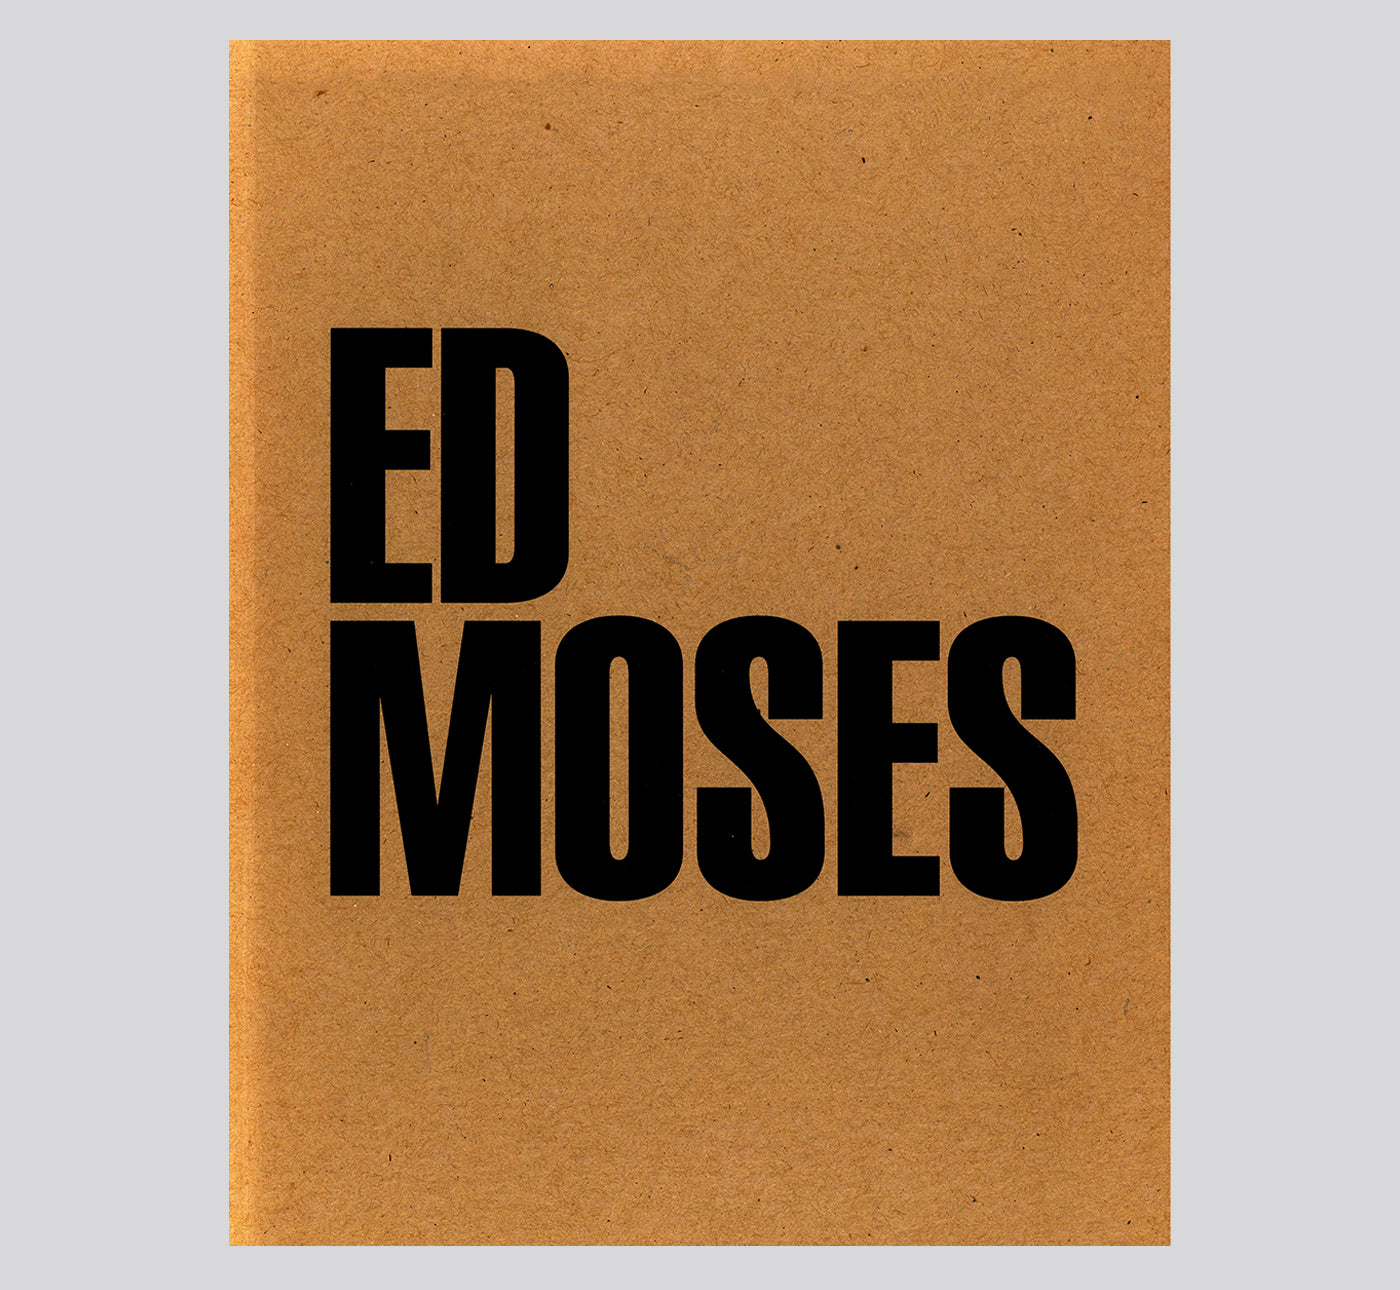 Ed Moses: Abstraction & Apparition